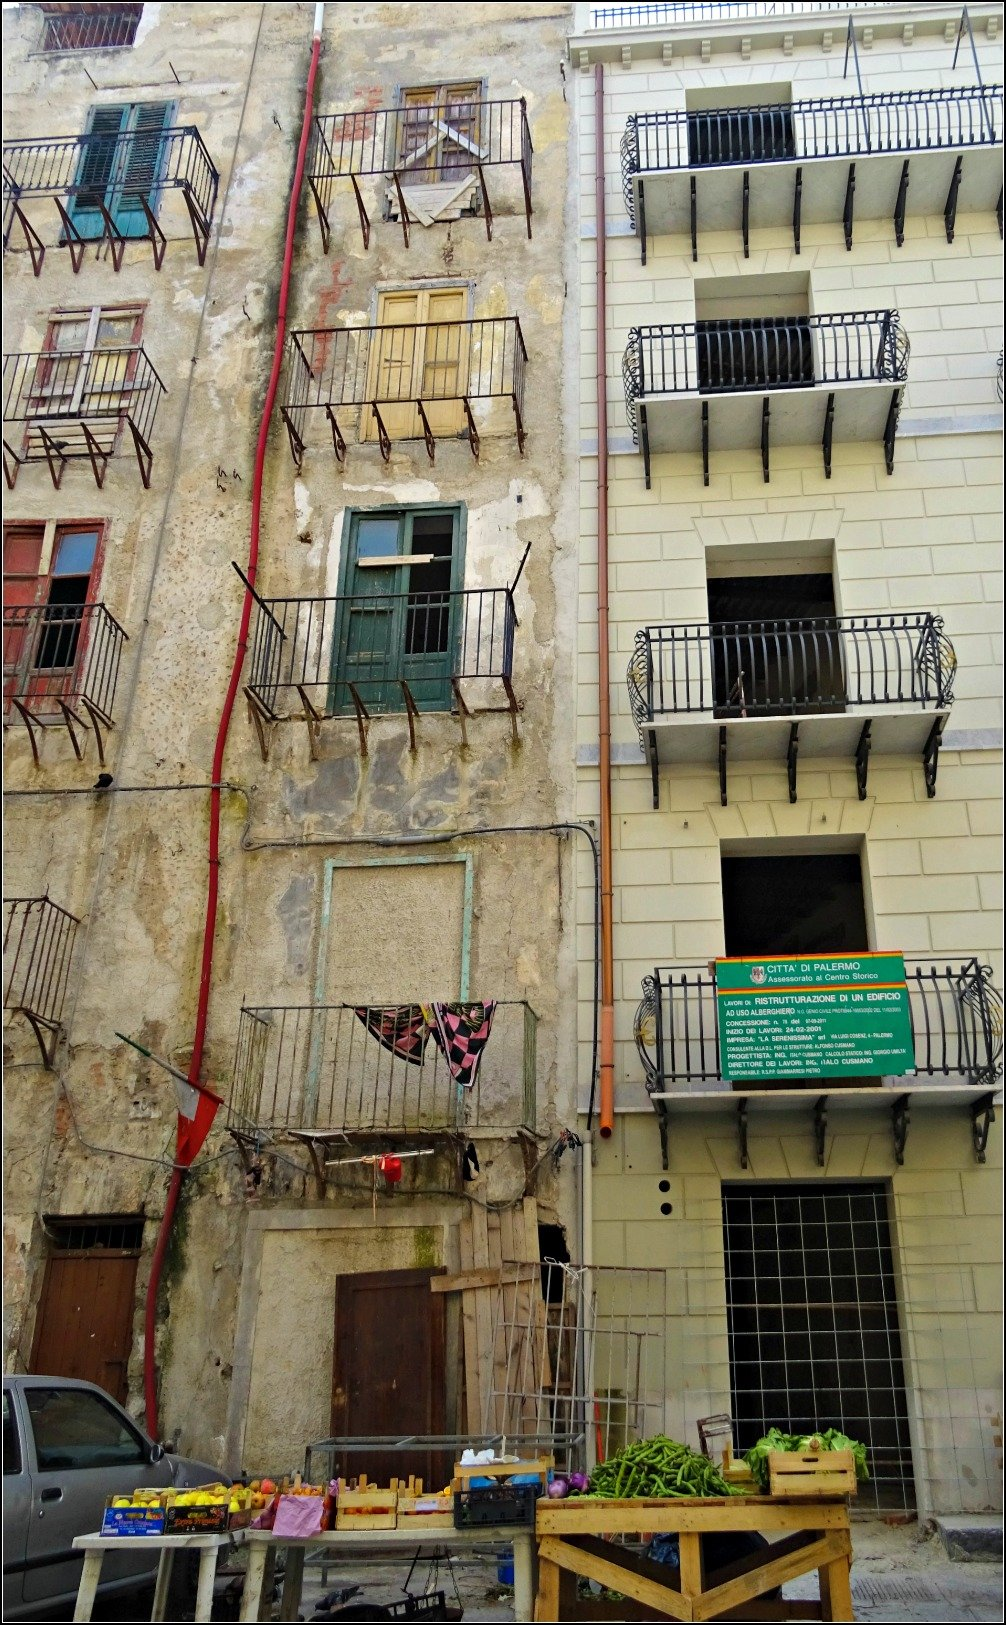 Fruit and Veg and old buildings in Palermo